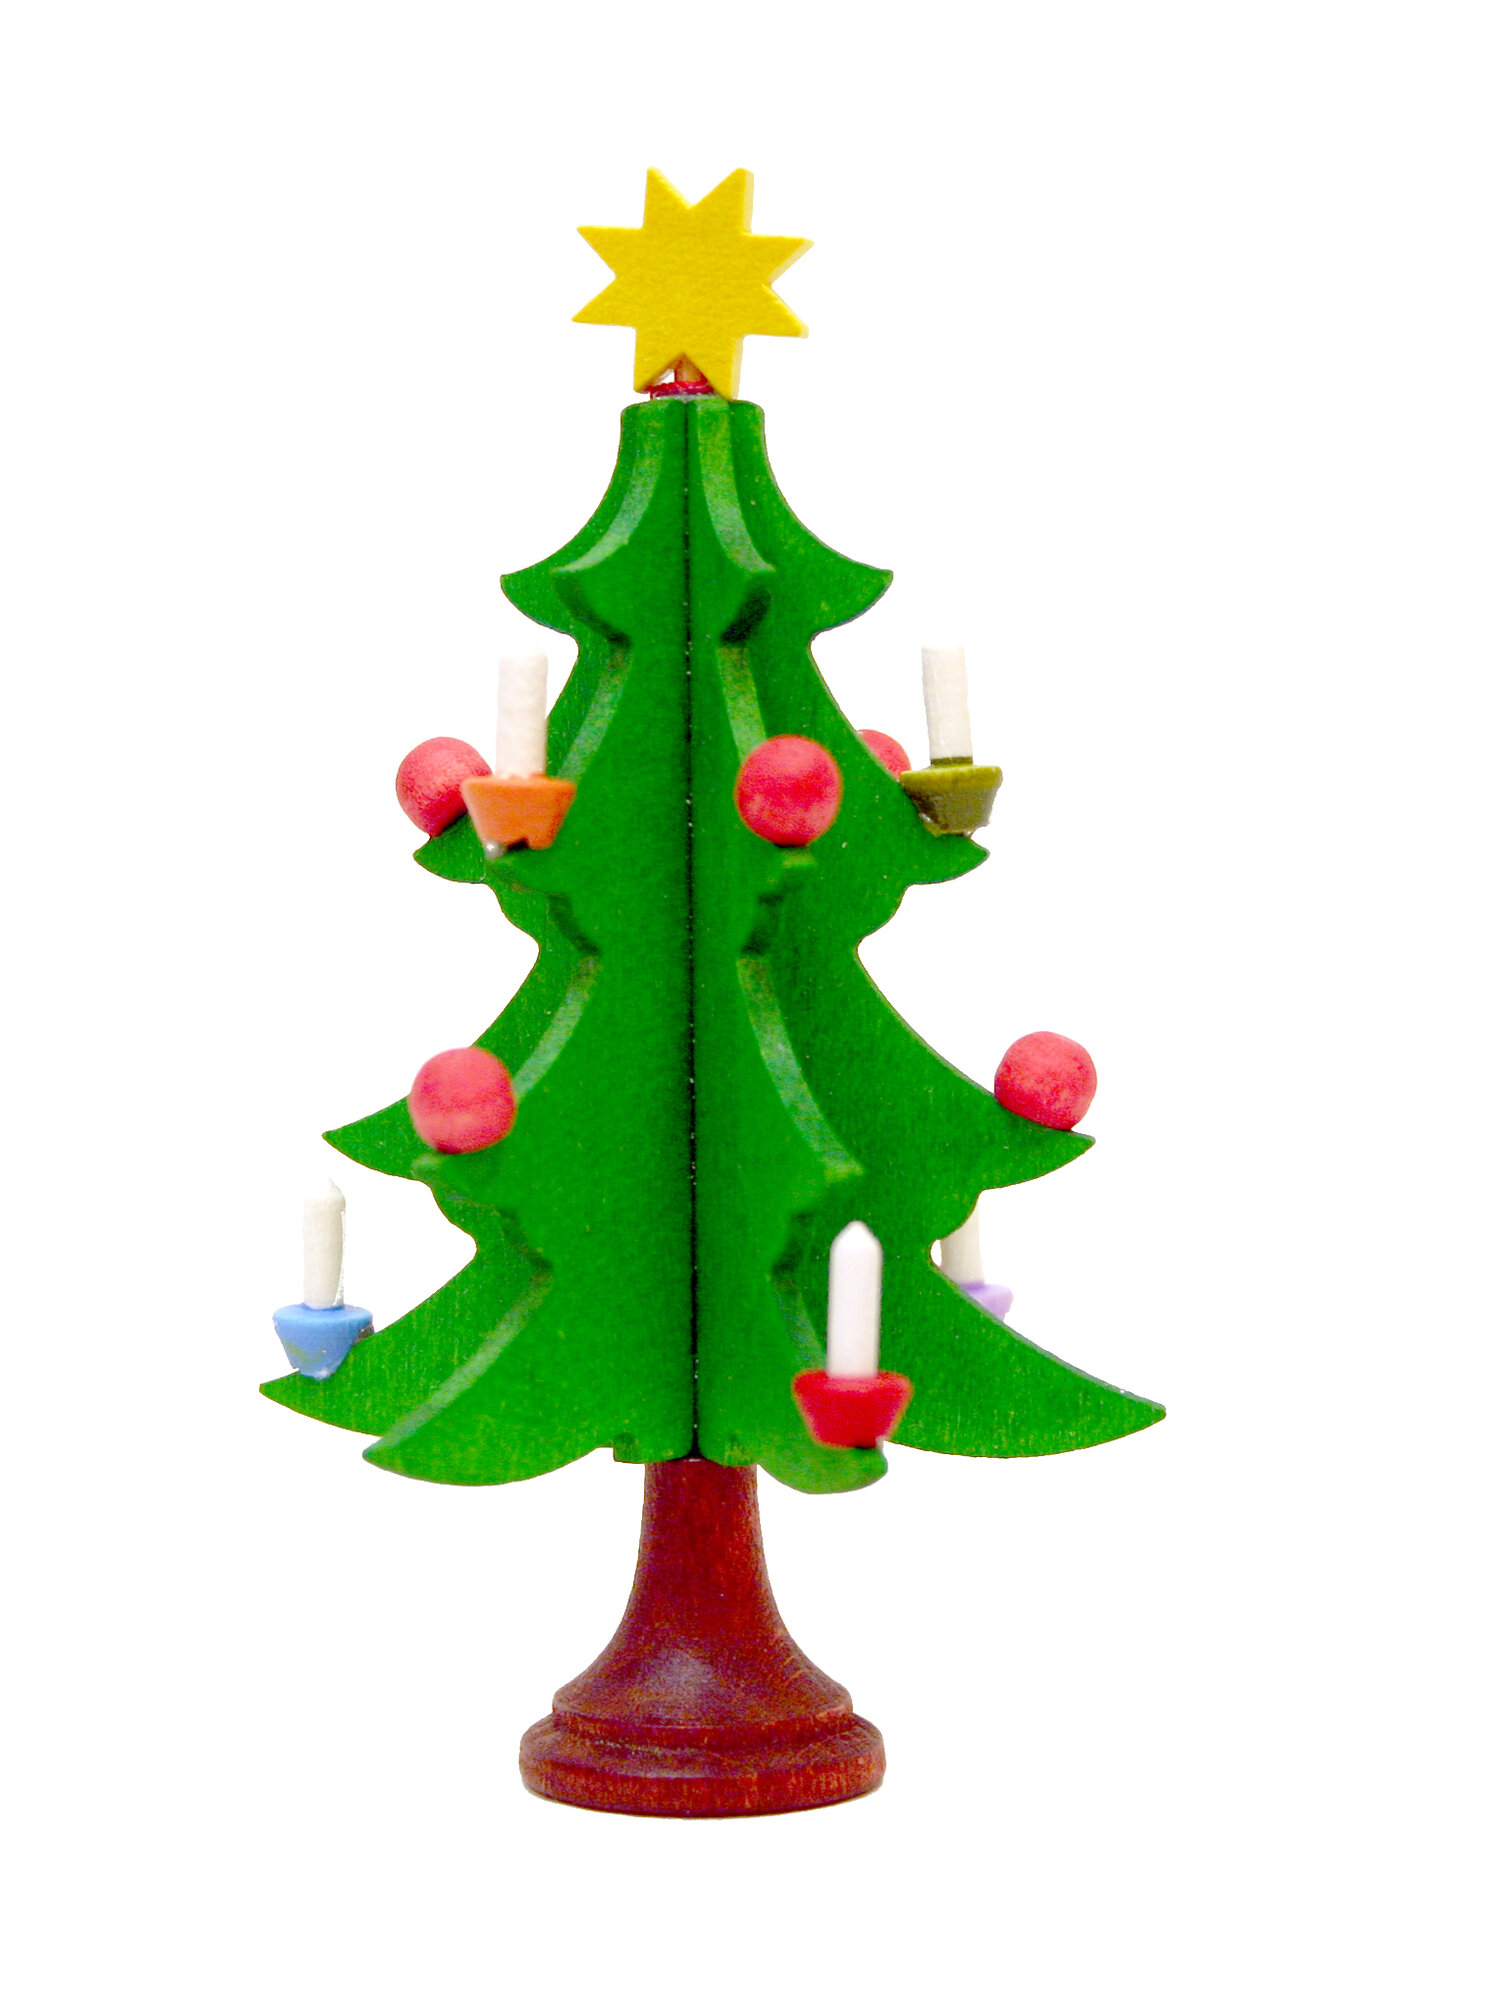 Christian ulbricht christmas tree with candles ornaments for Christmas candles and ornaments